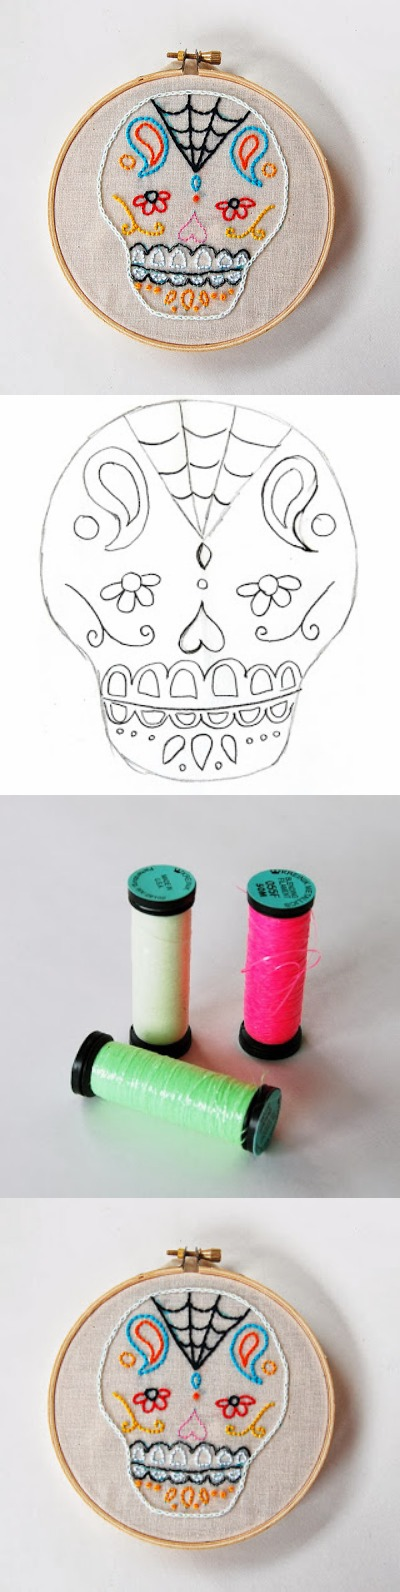 11. Embroidered Sugar Skulls